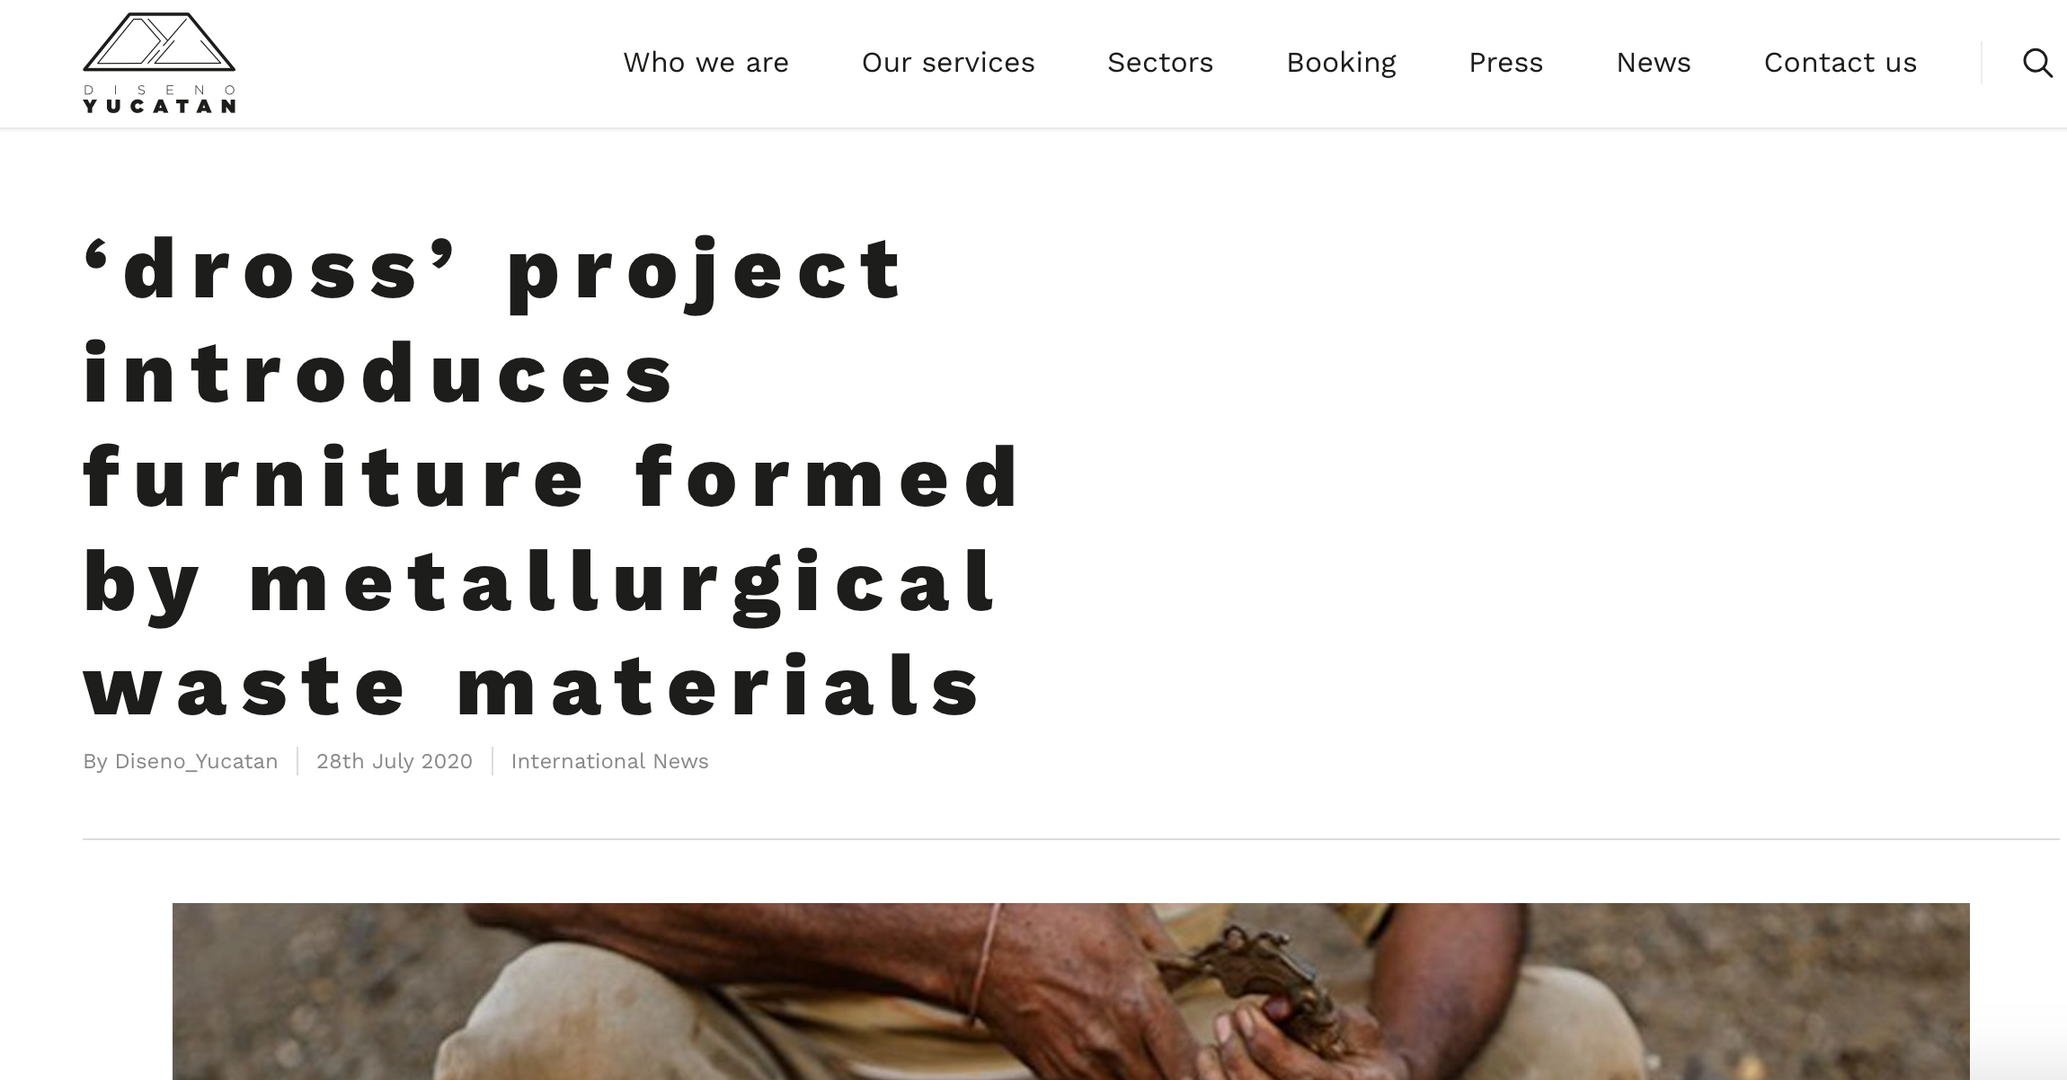 'dross' project introuduces furniture formed by metallurgical waste materials